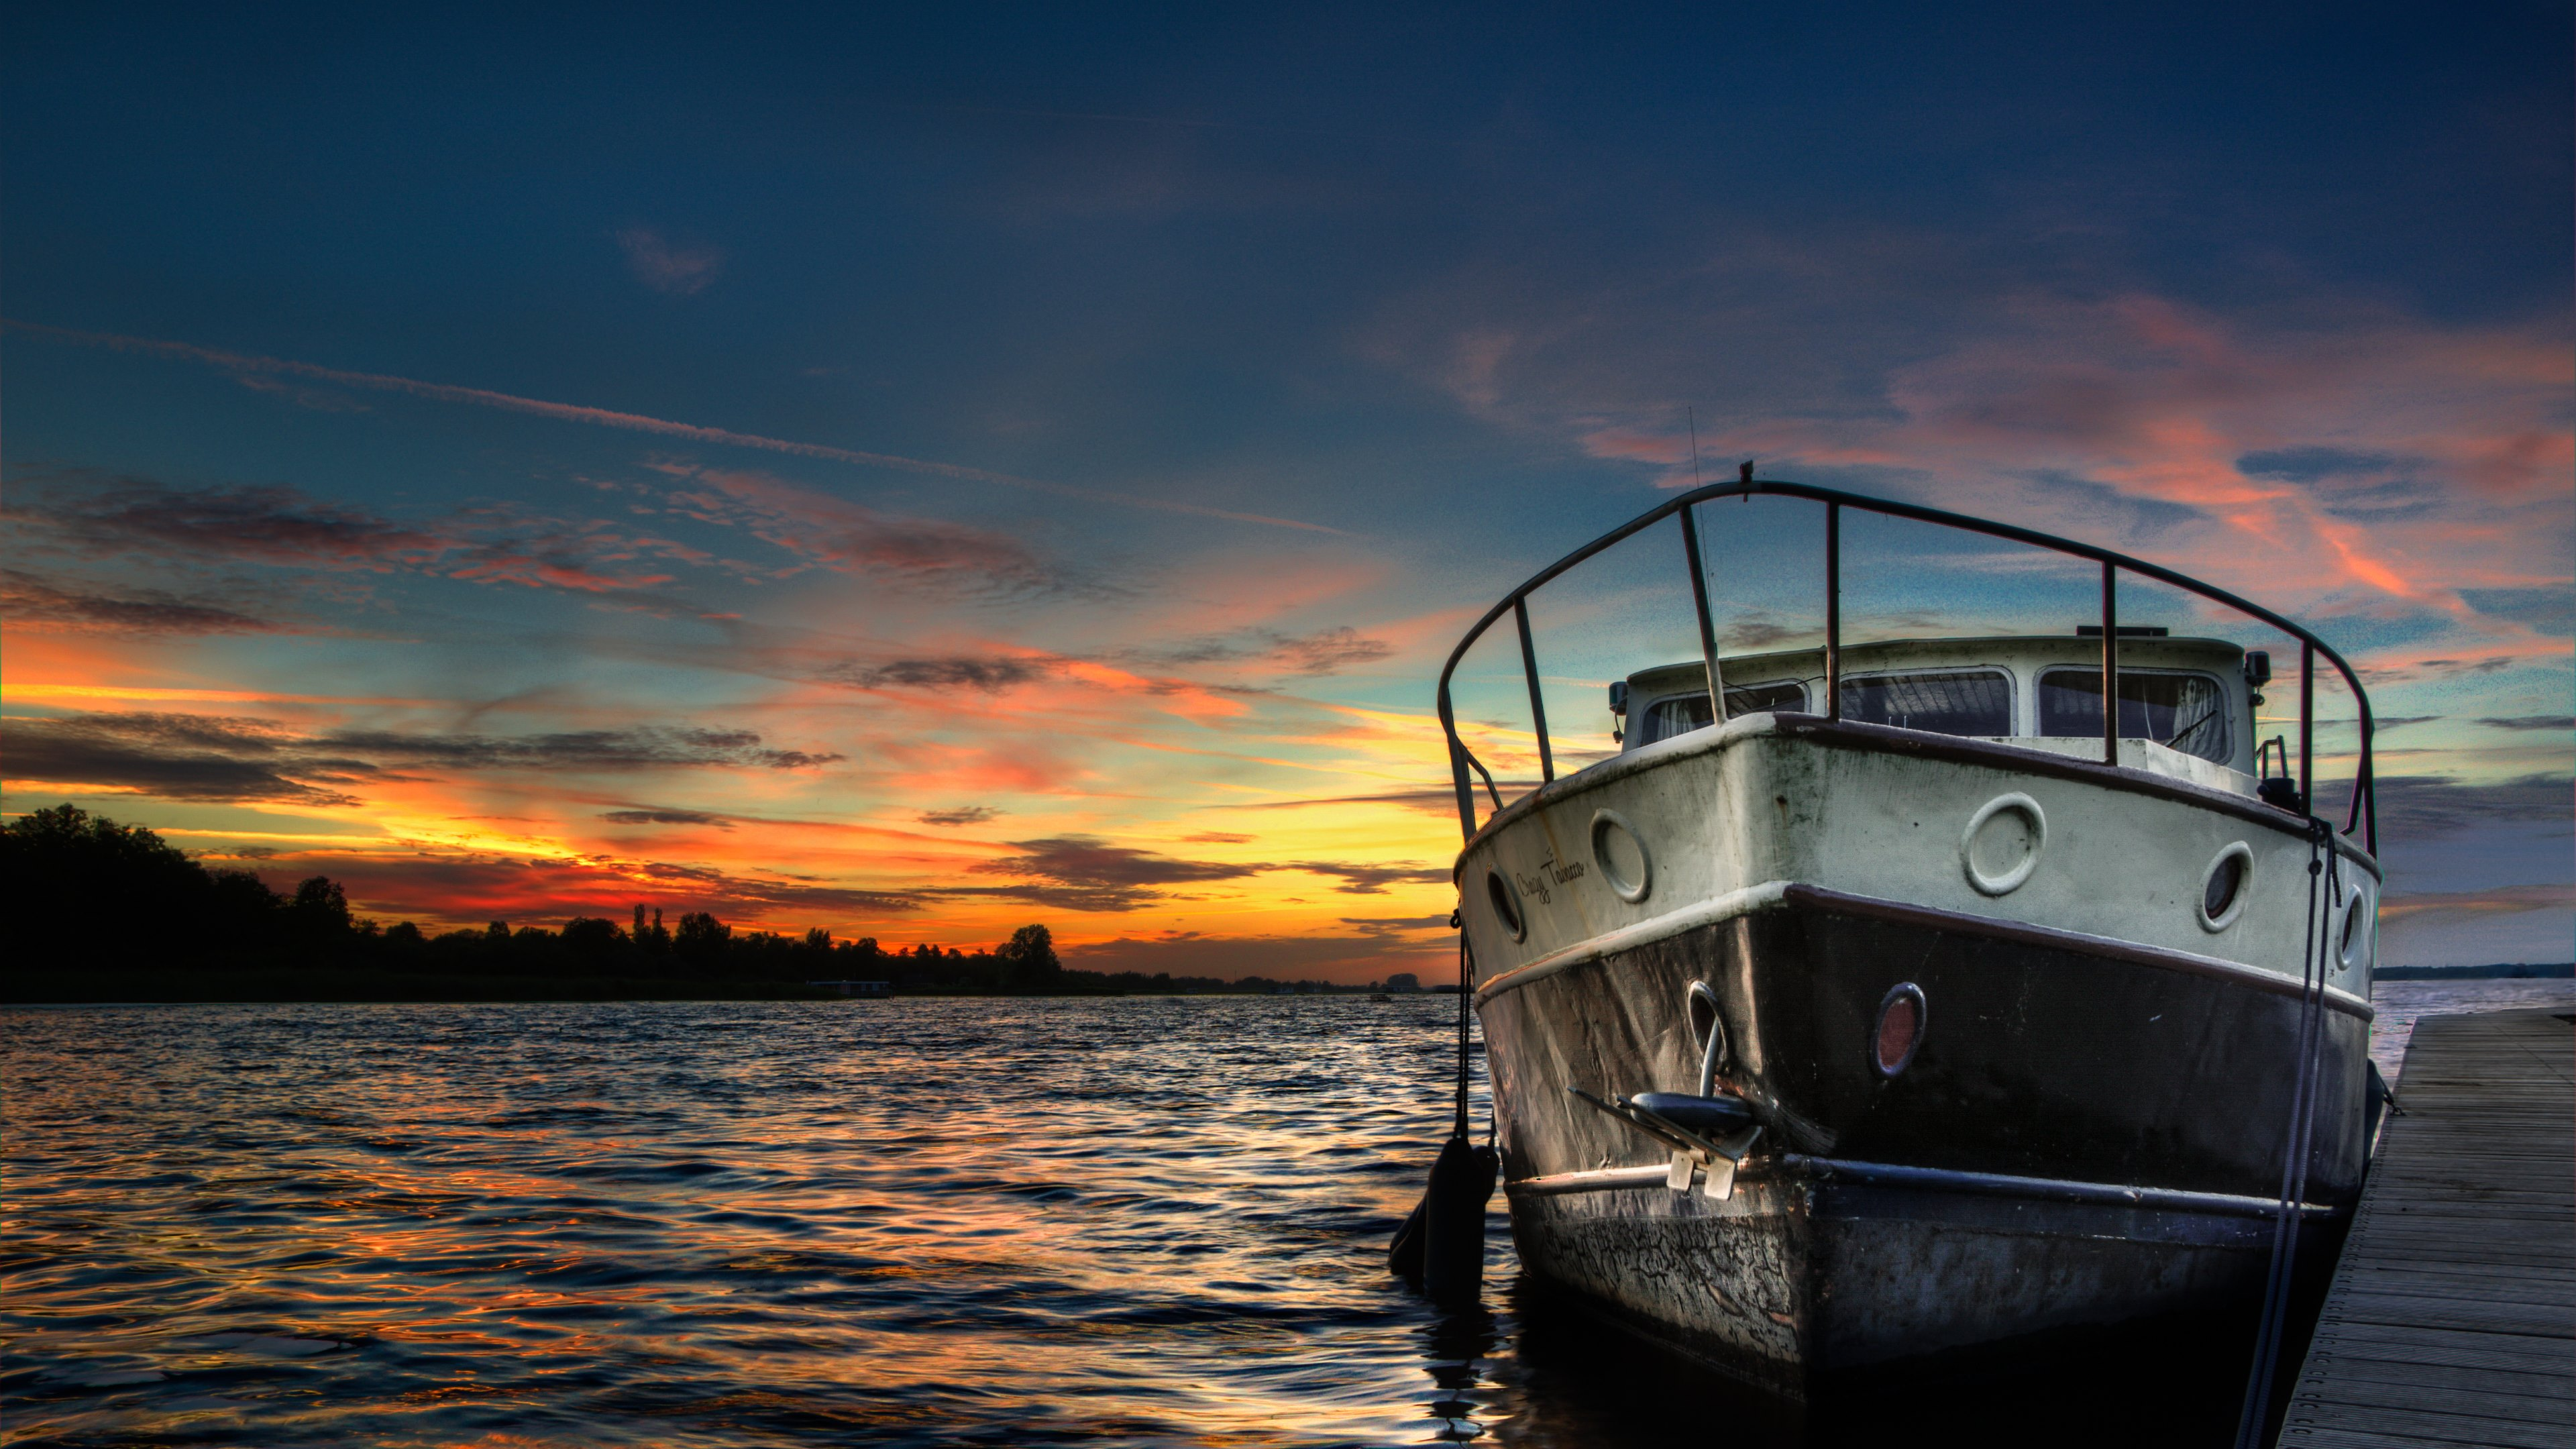 A boat in the setting sun 4k ultra hd sfondo and sfondi for Immagini desktop 4k